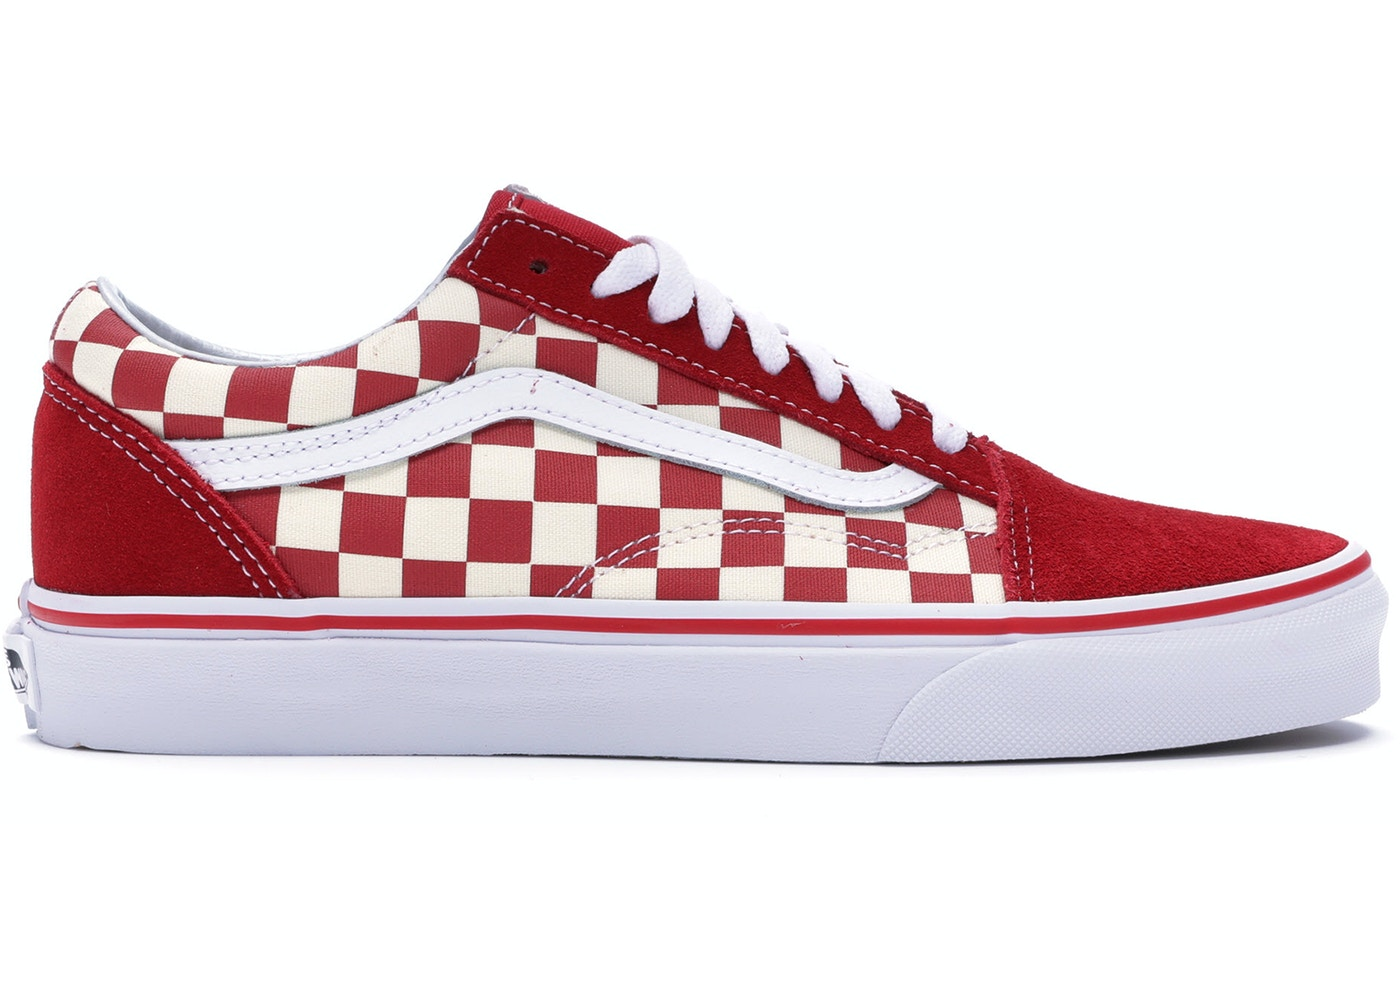 5464943b6a Vans Old Skool Checkerboard Racing Red - VN0A38G1P0T